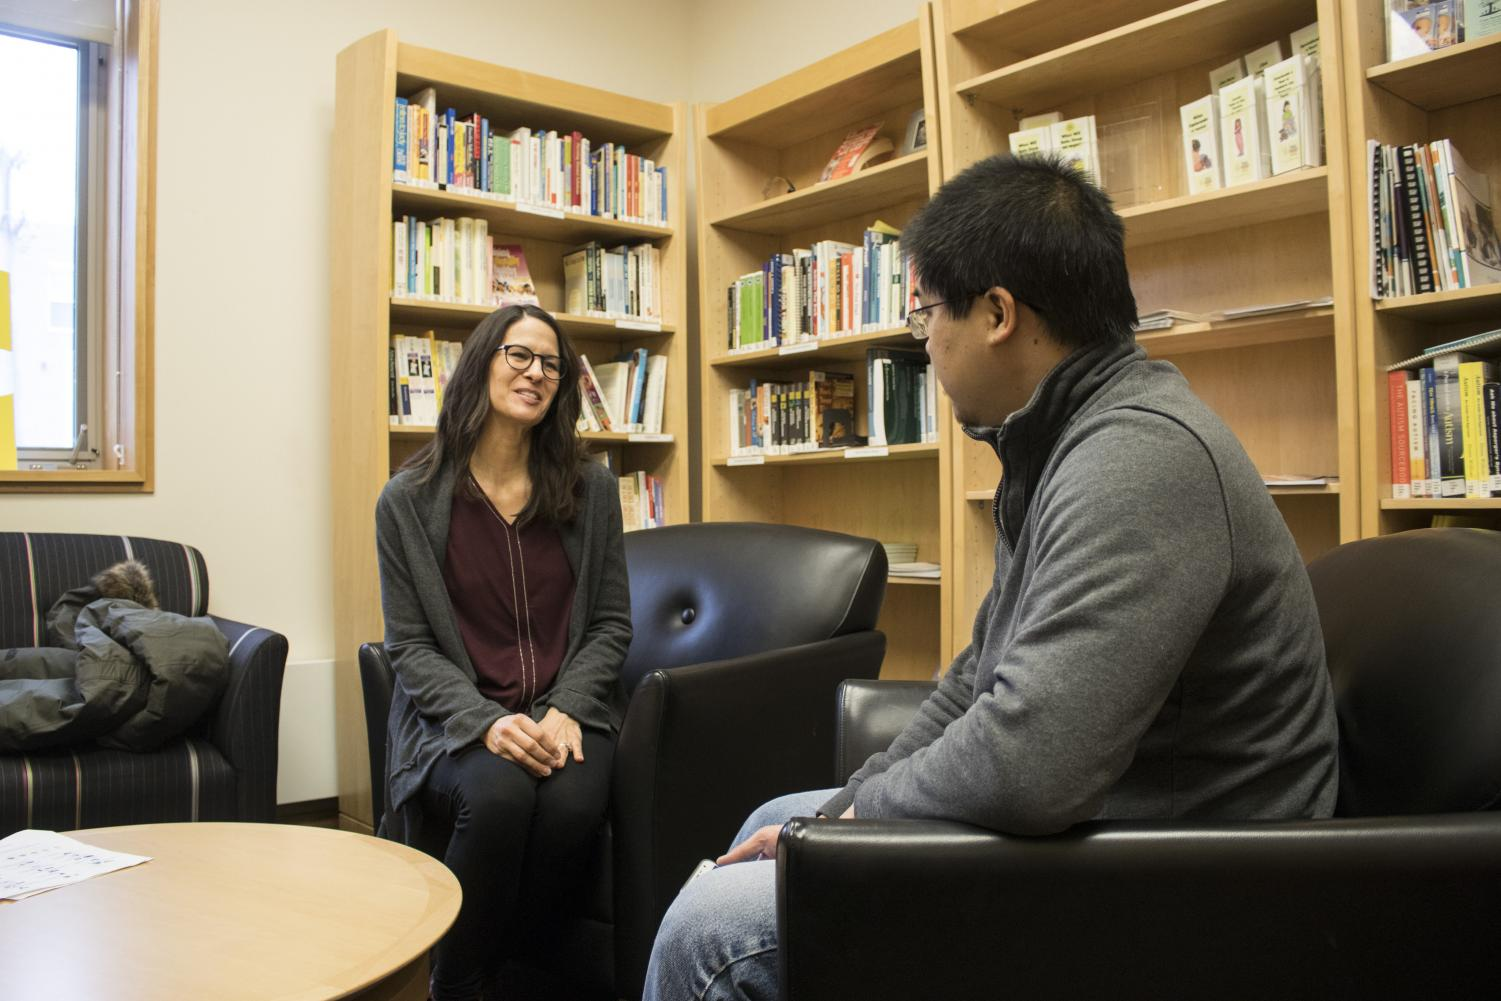 Jeanne Kramer (left), an employee of the new Microsoft Lighthouse Initiative, speaks with participant, Ethan Chew (right), at Christopher Hall.